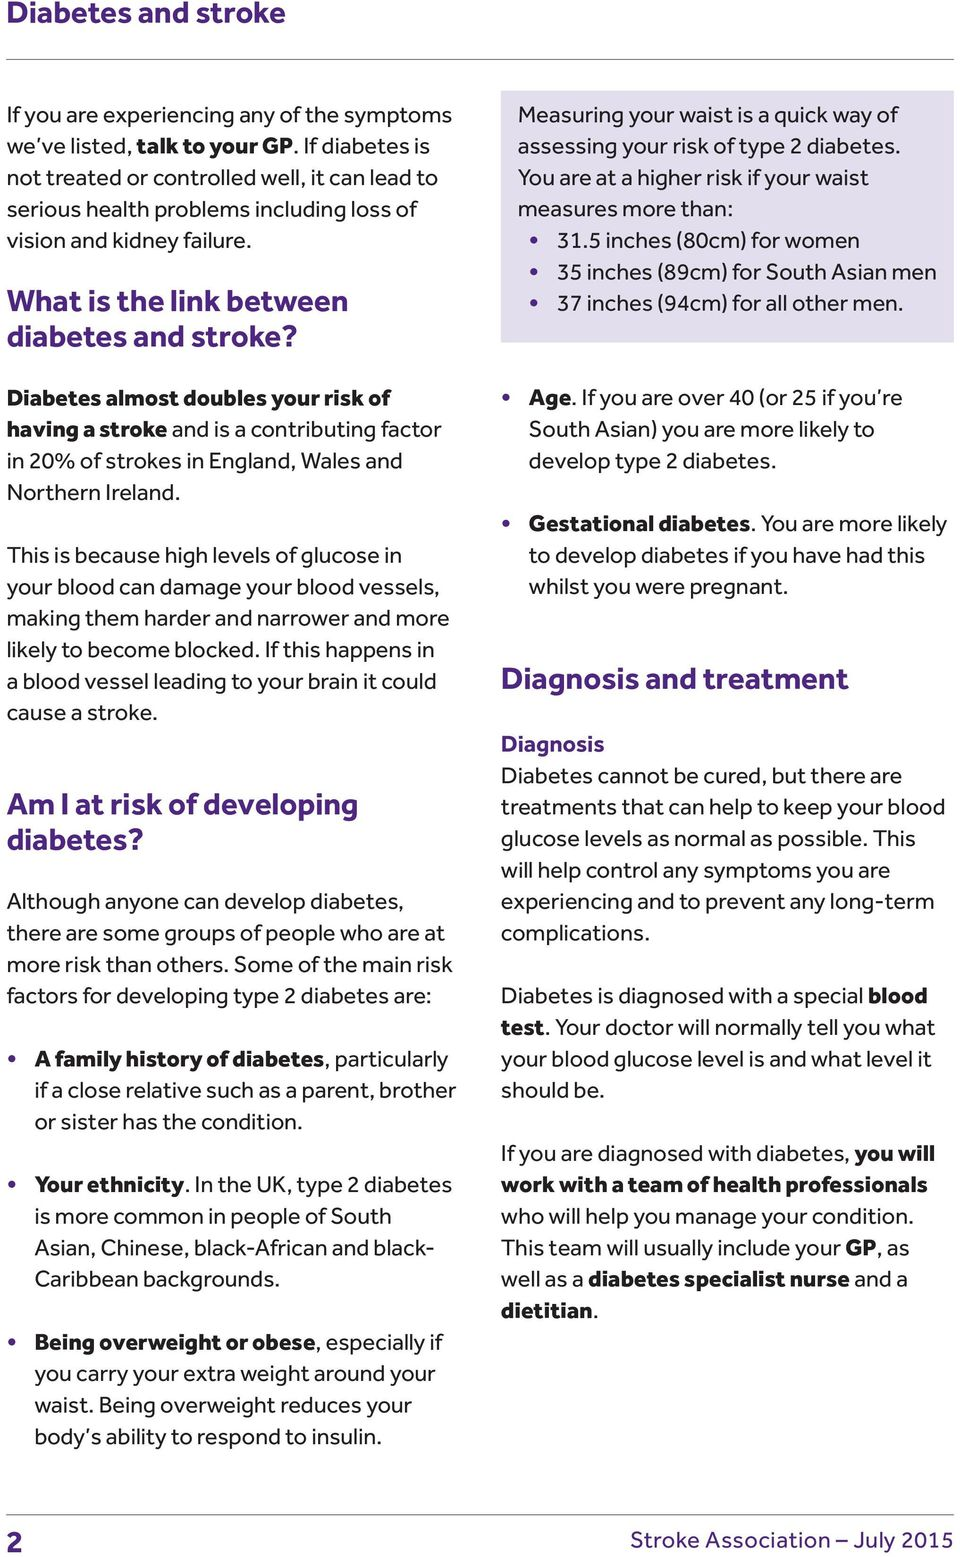 Diabetes almost doubles your risk of having a stroke and is a contributing factor in 20% of strokes in England, Wales and Northern Ireland.